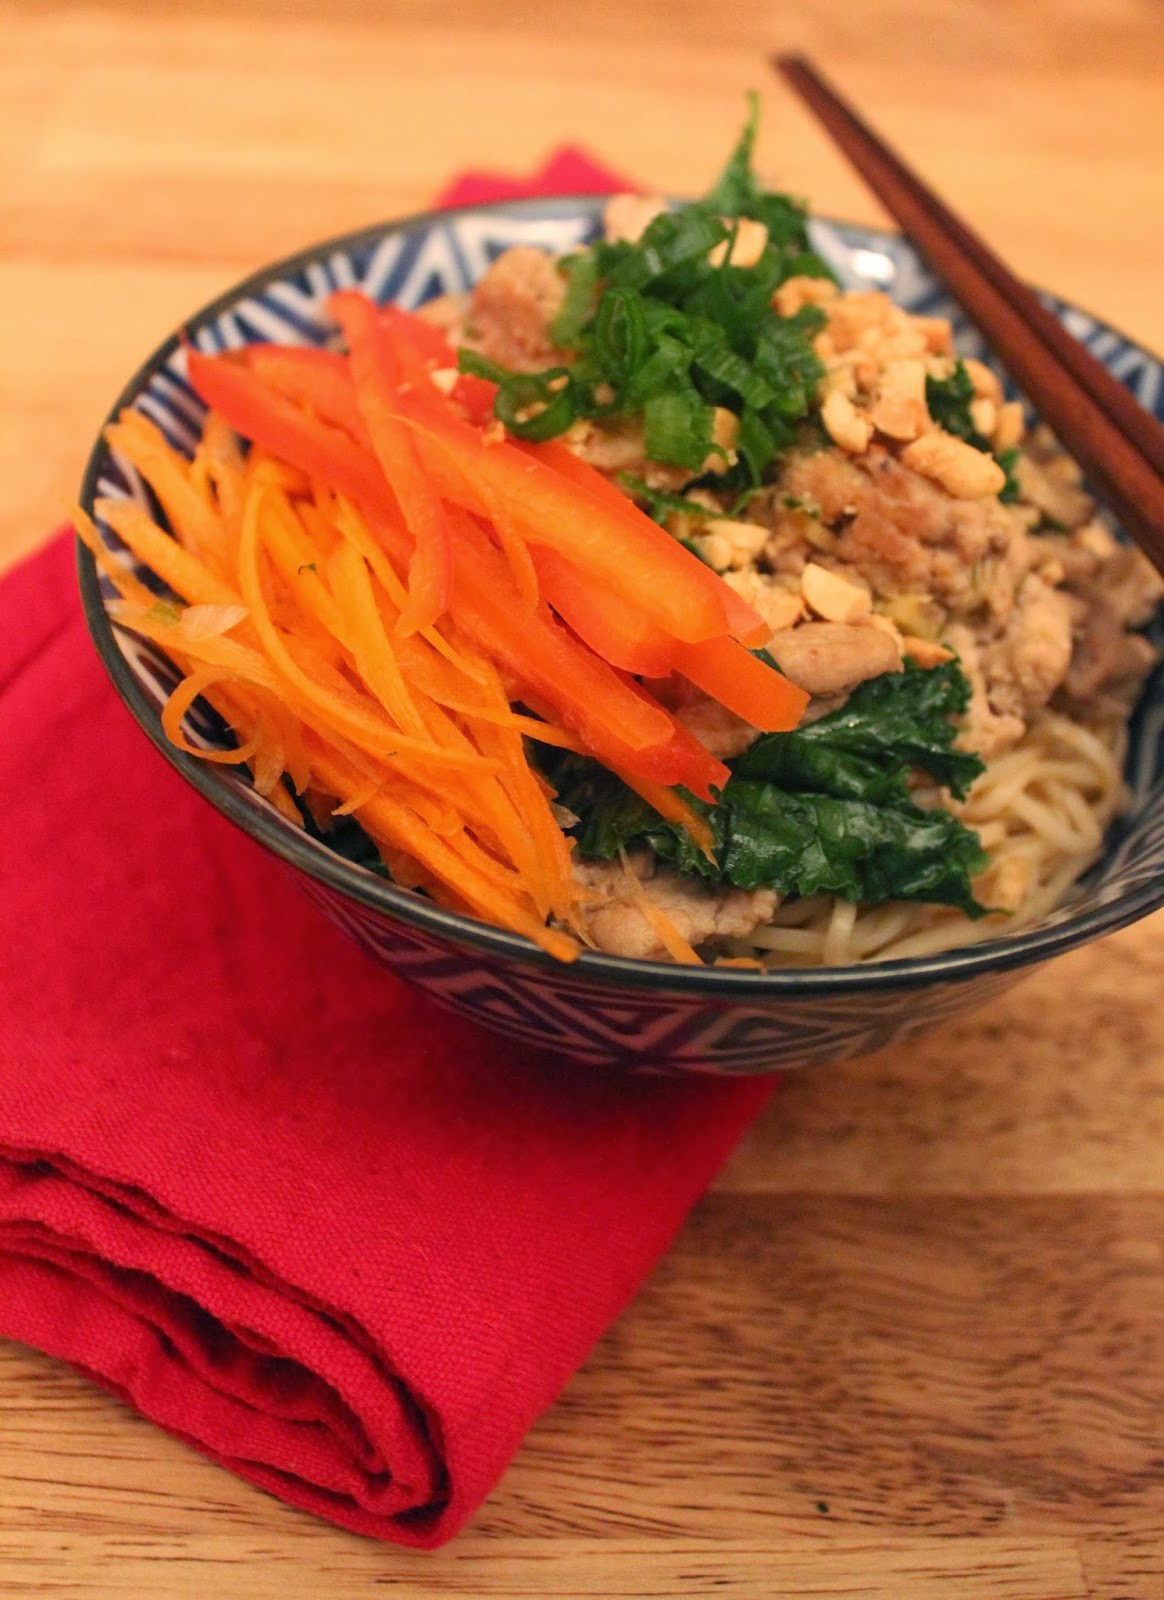 Easy #mealprep or weeknight dinner: Spicy Sichuan Noodles with Turkey, Kale and Peanuts